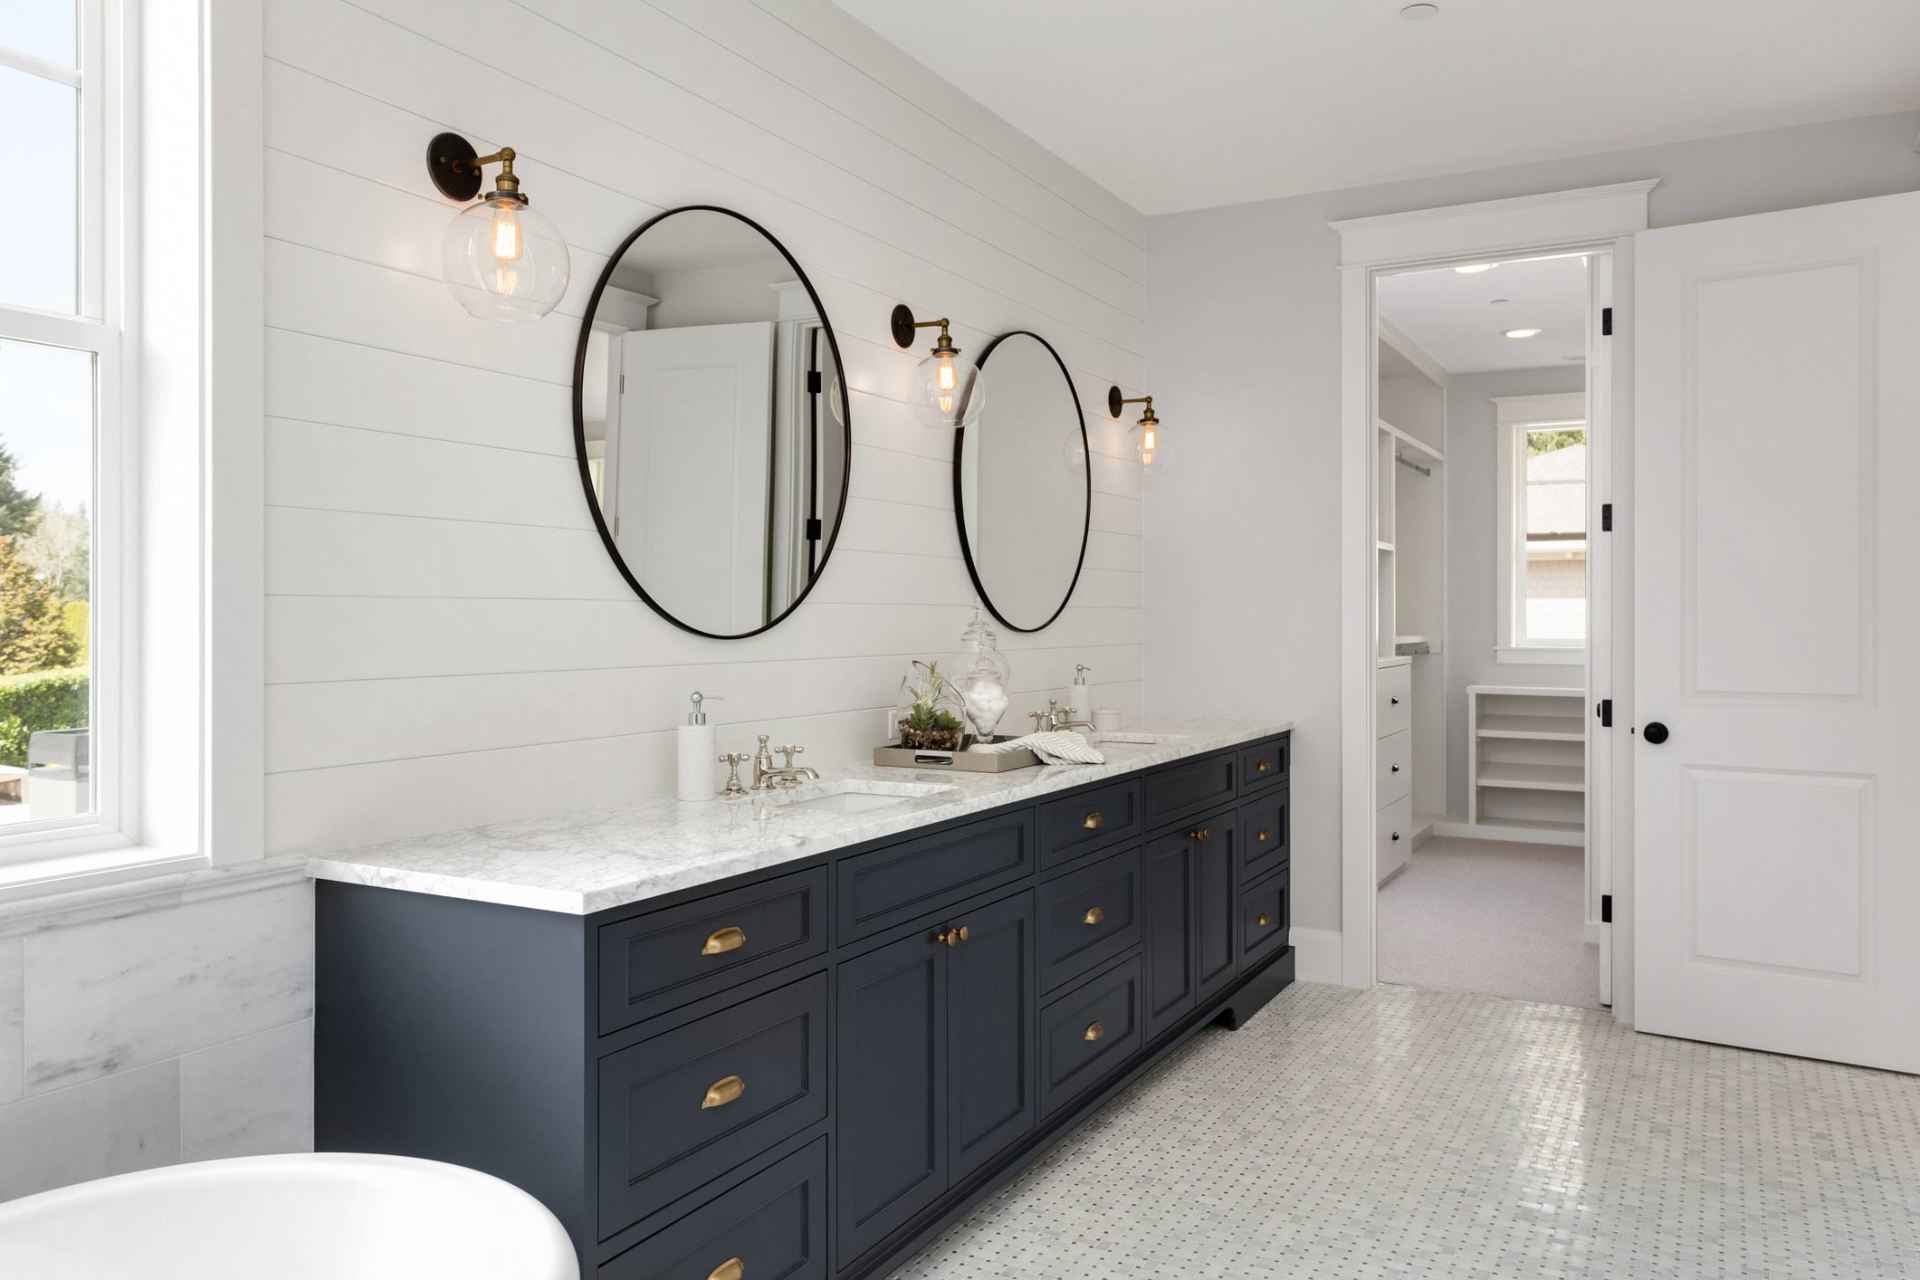 - Increase Bathroom Safety With Electrical Outlet Upgrades